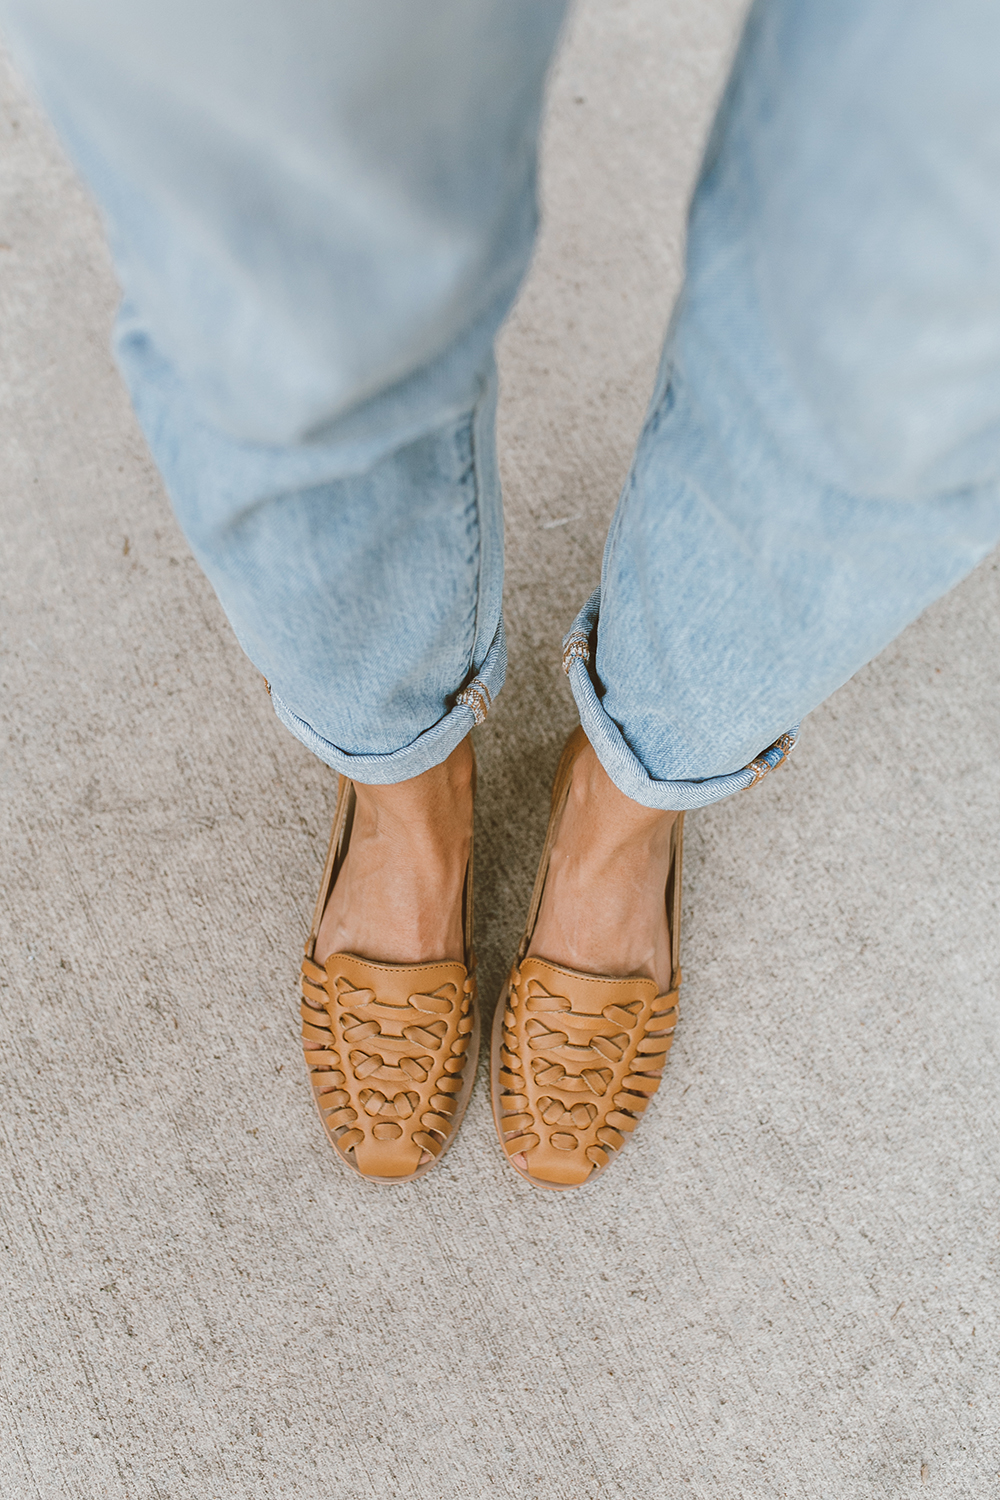 f9a585a10013 The Shoes You Need In Your Life - LivvyLand